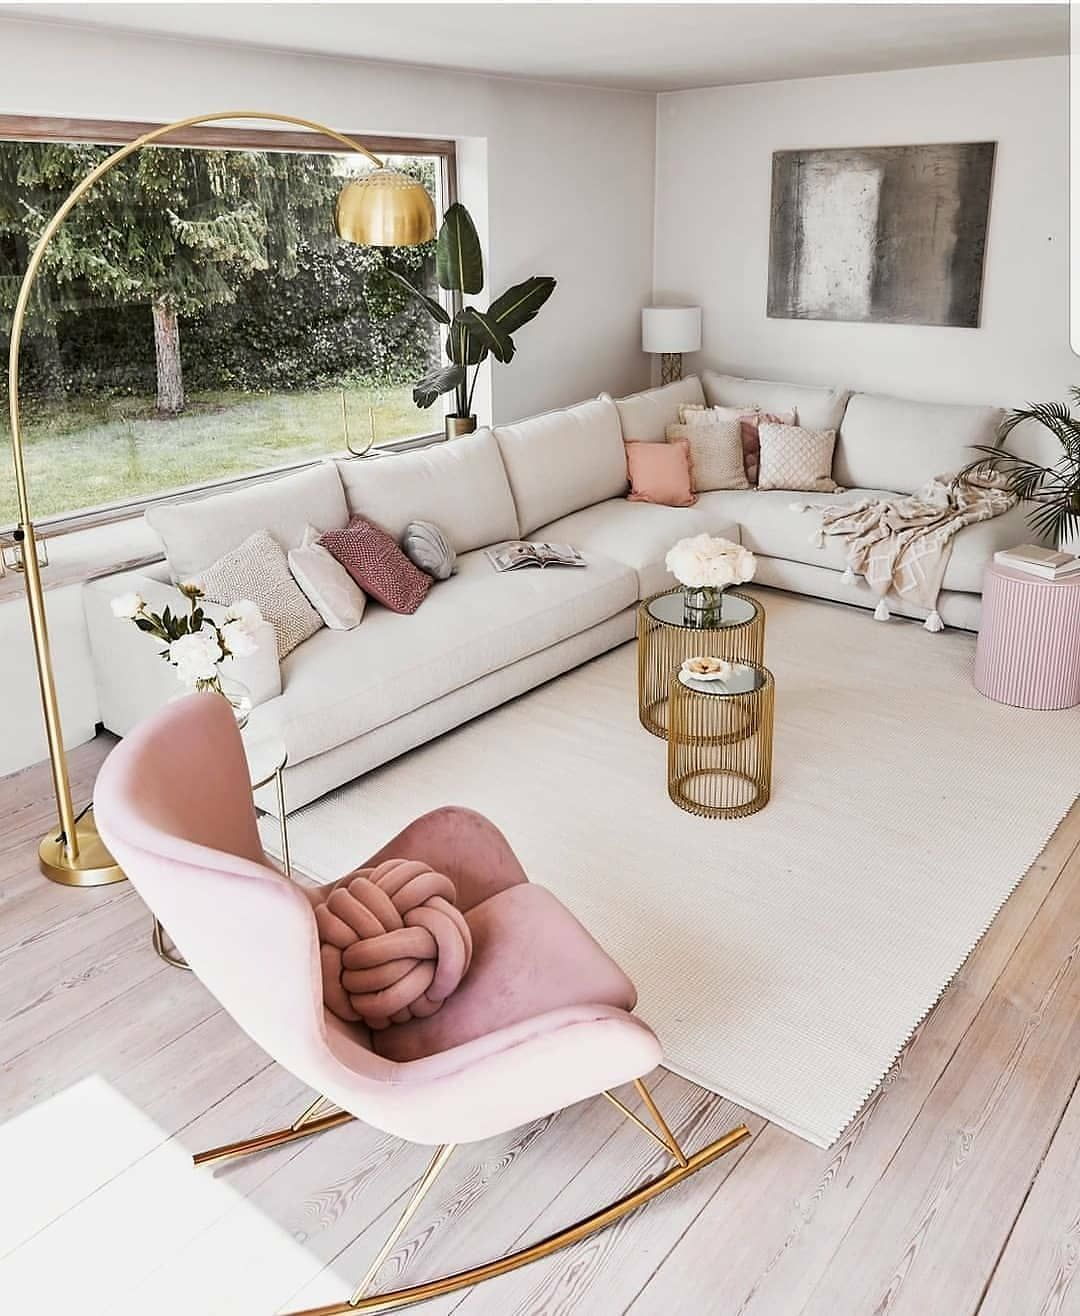 Home Decor Design On Instagram Describe This Room In One Word Follow Outst Small Living Room Decor Living Room Decor Inspiration Living Room Decor Cozy